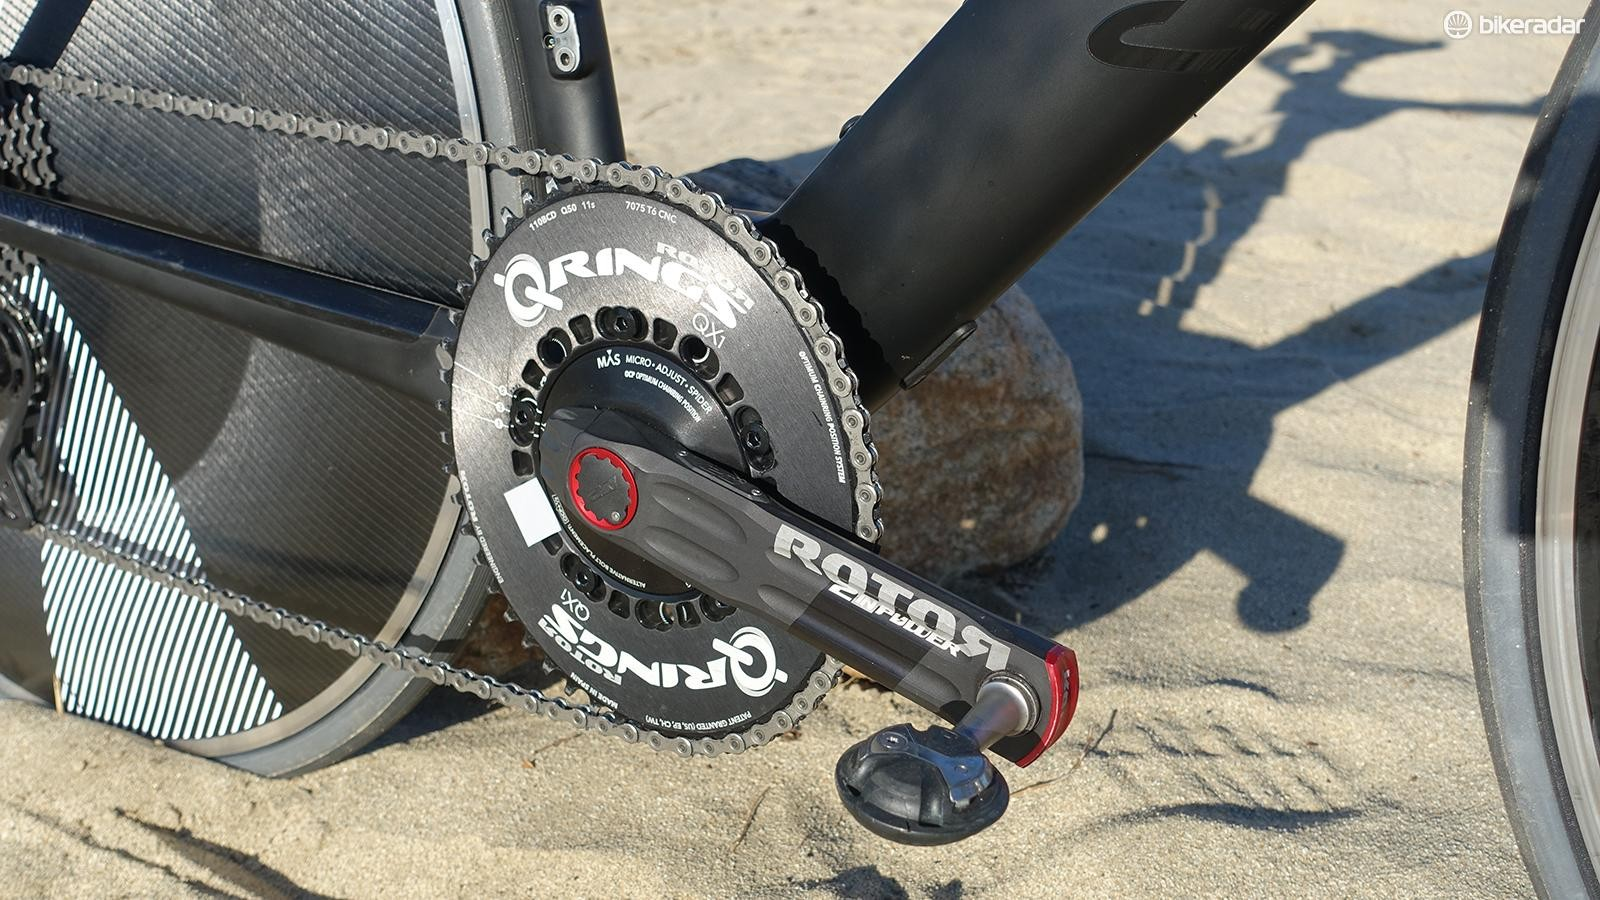 Rotor supplied a 2inPower meter crank and 1x 50-tooth aero chainring for the time trial. Monitoring power output was important for pacing and the training prior to the event